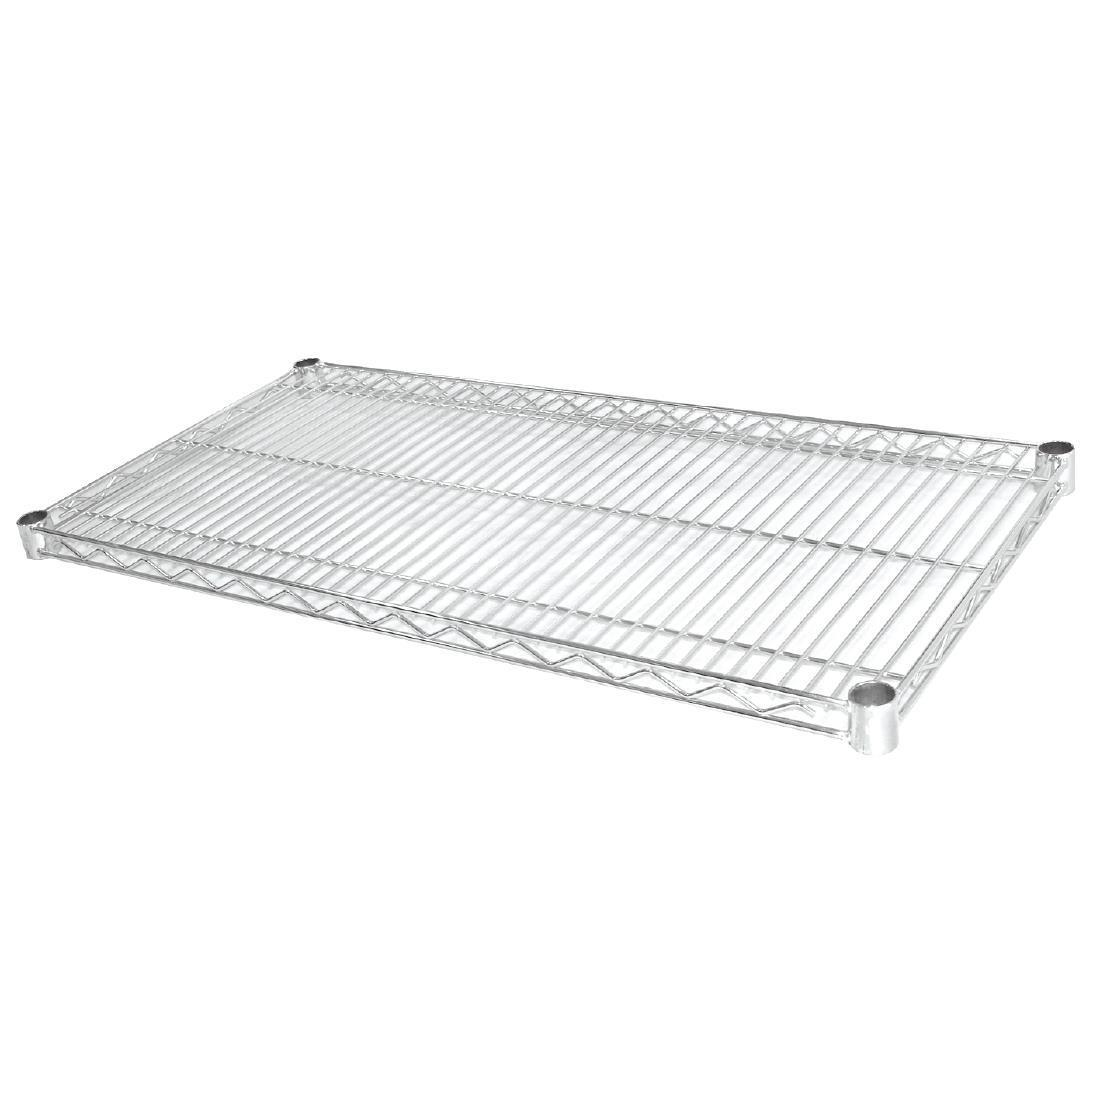 Vogue Chrome Wire Shelves 915x610mm Pack of 2 - U892